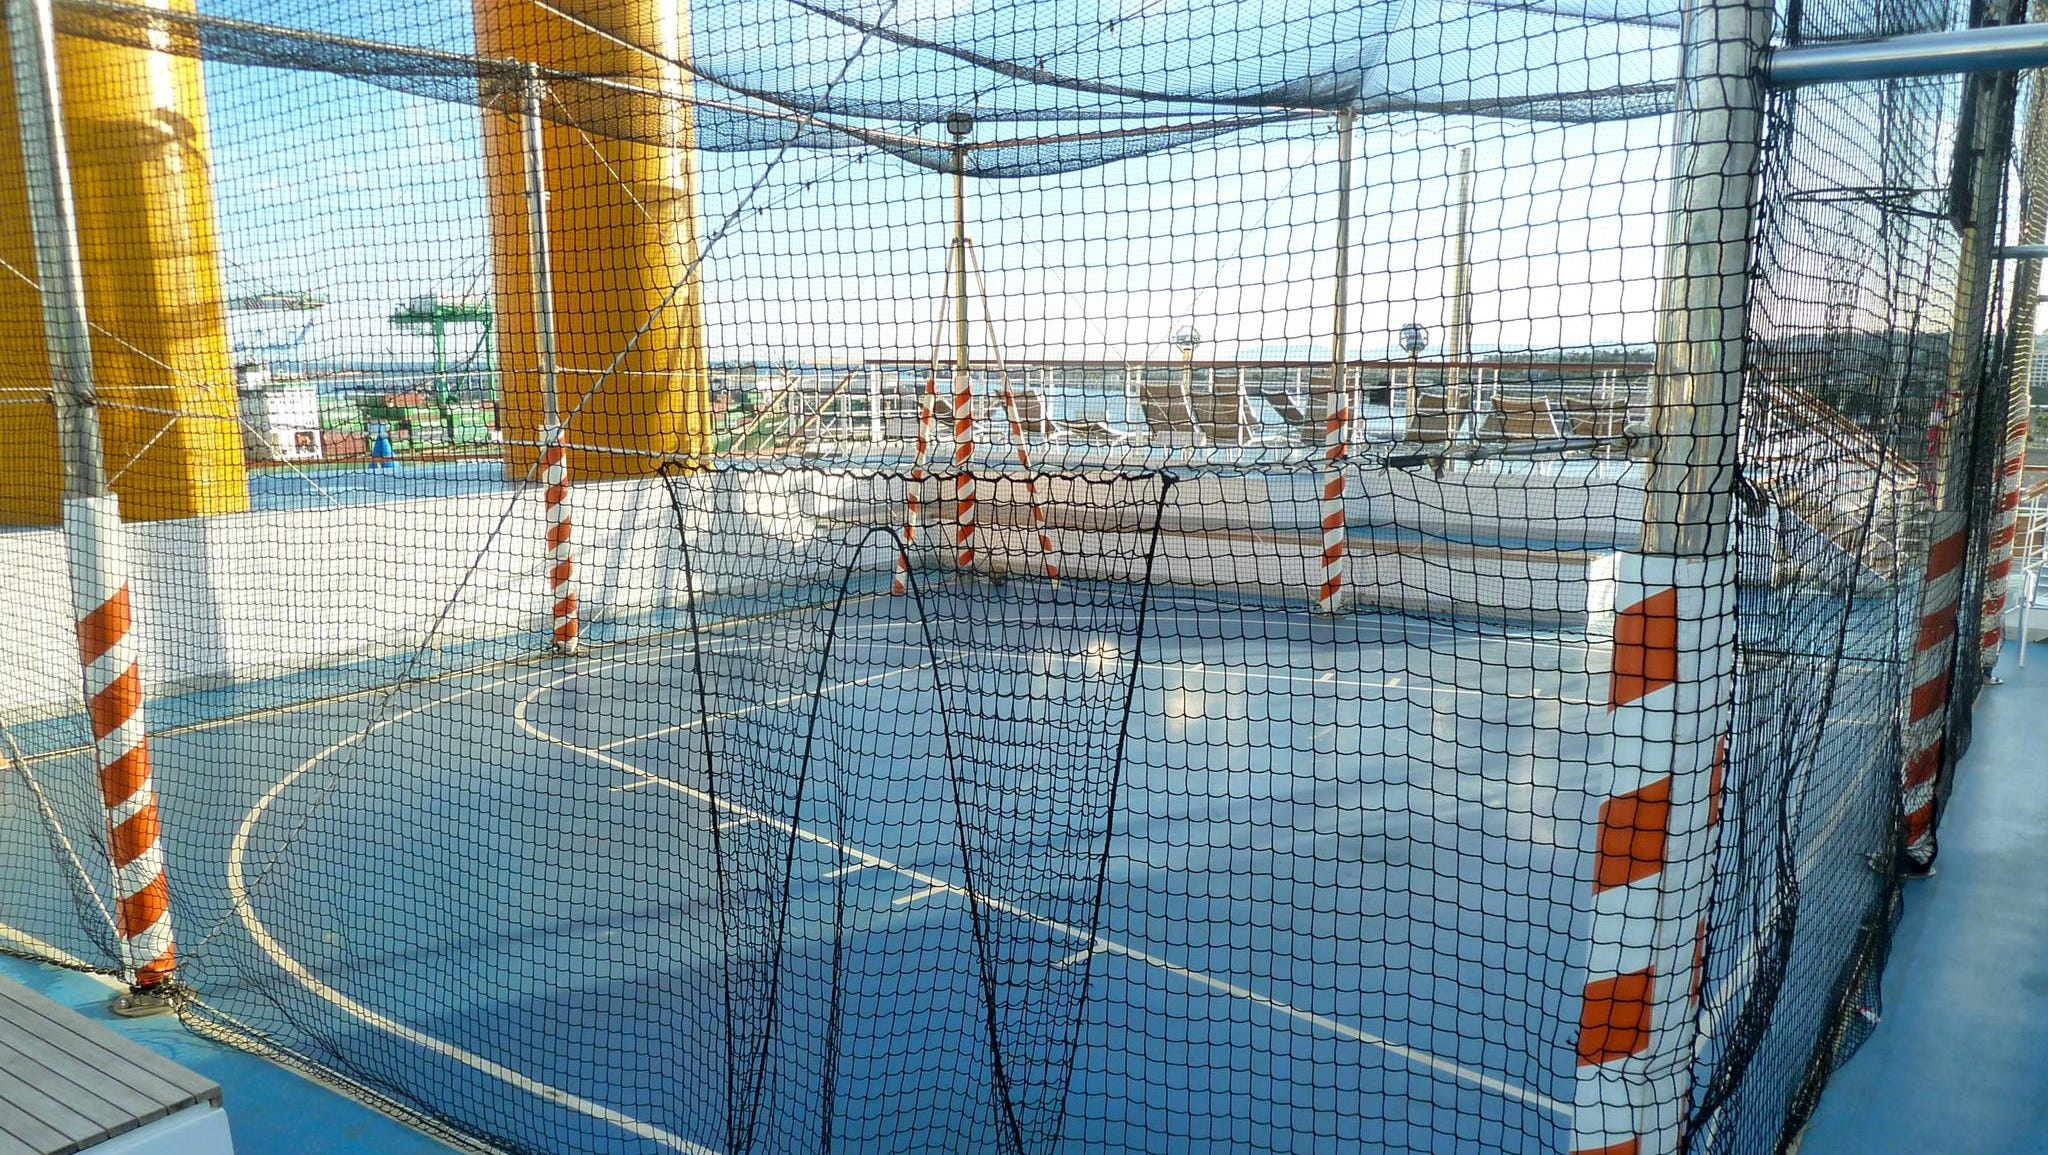 A net-covered games area on aft Fuxia Deck features a half basketball court.